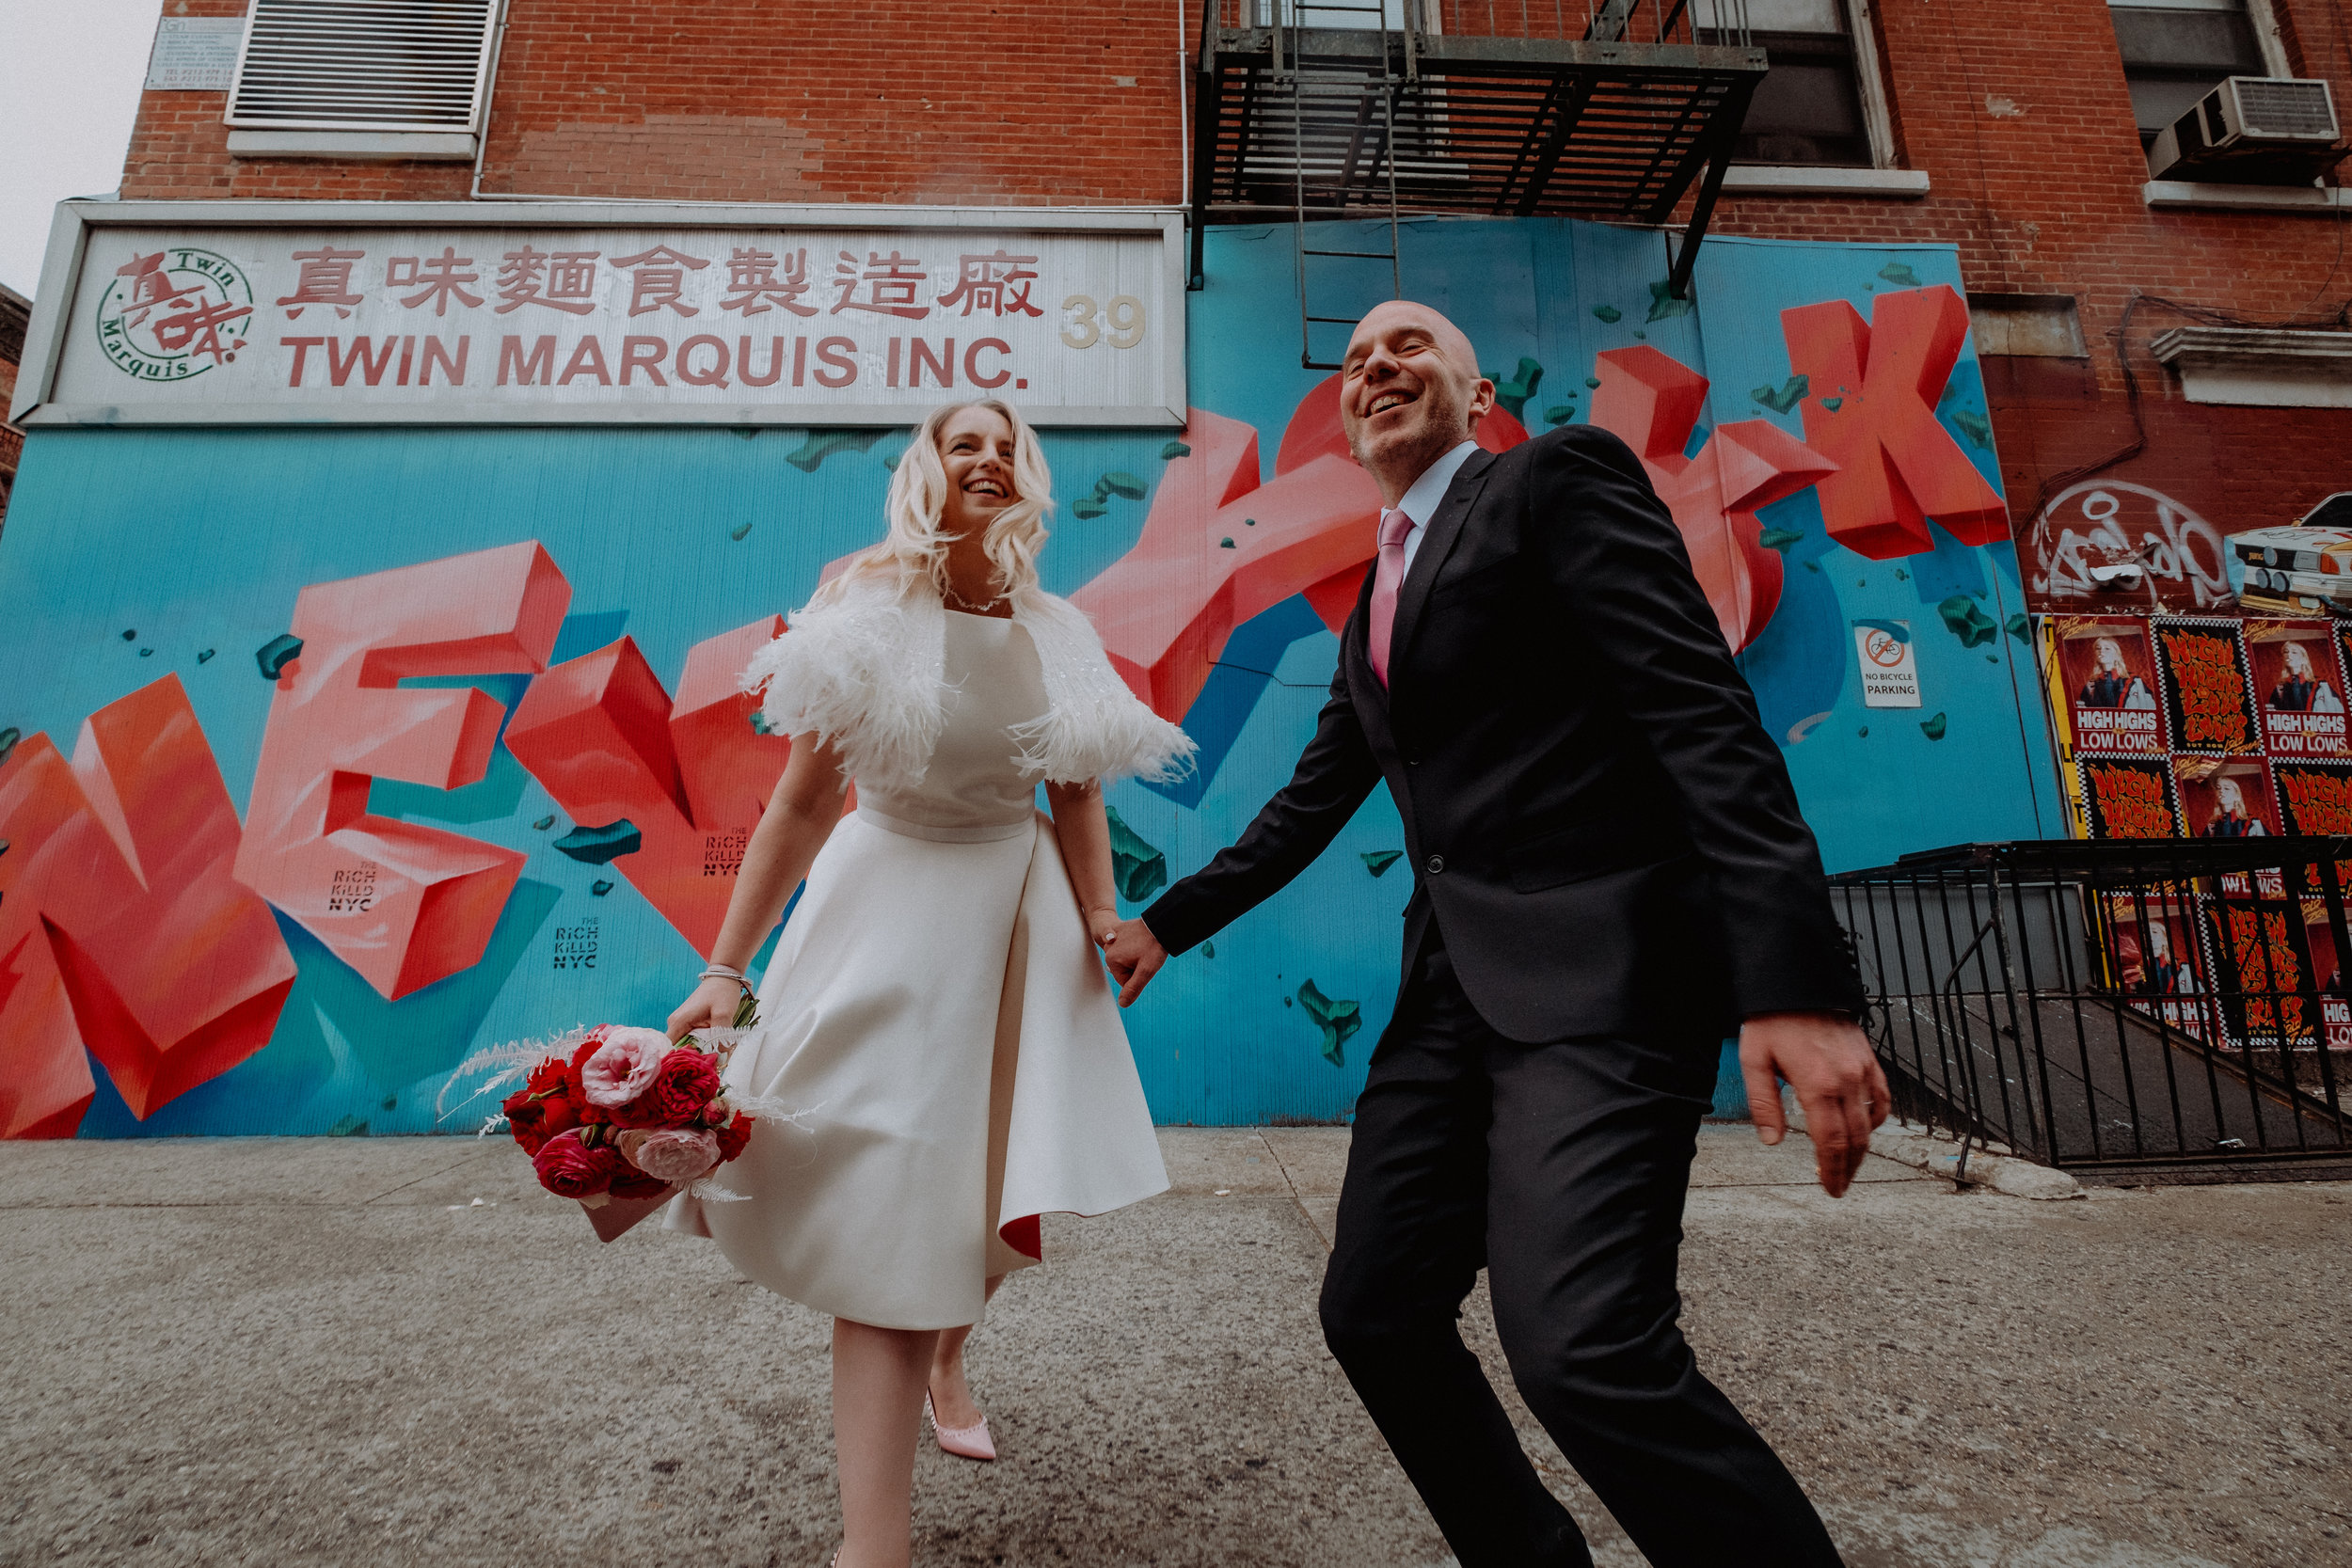 Brooklyn_City_Hall_Elopement_Photographer_Chellise_Michael_Photography249.JPG